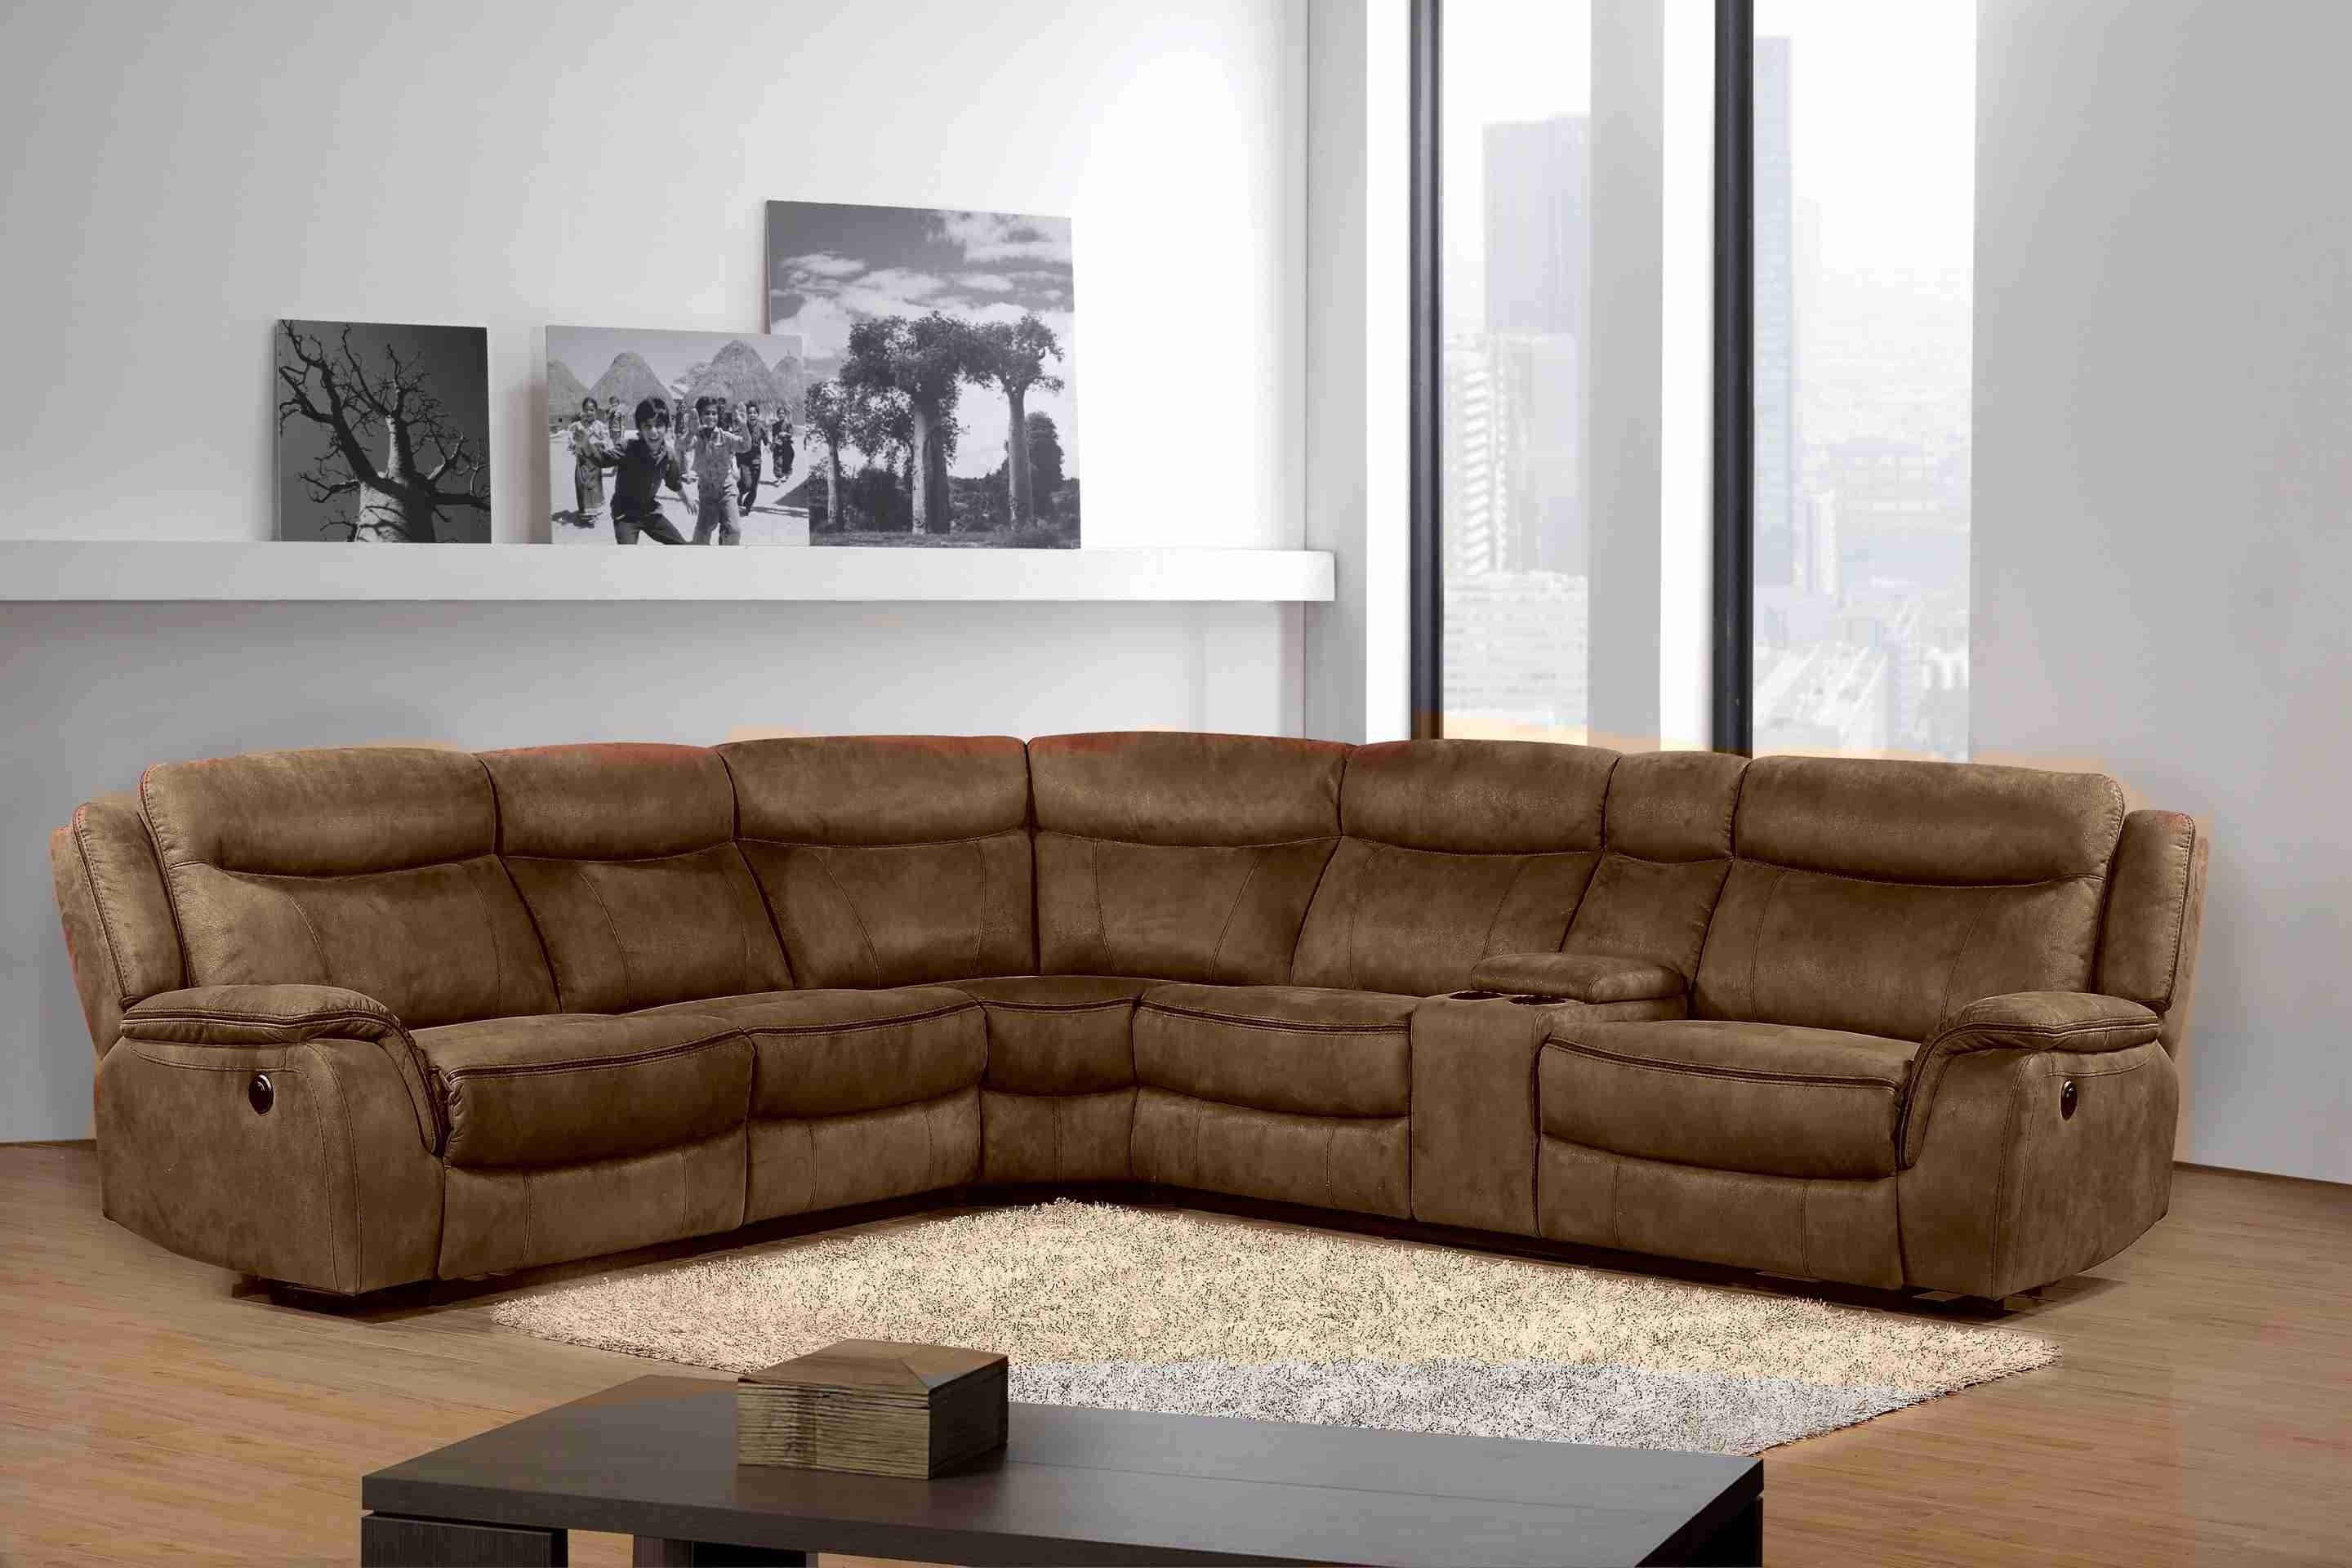 4-Piece Reclining Living Room Sectional with 2 Power Recliners, Chocolate/Camel Trim - UH-1607